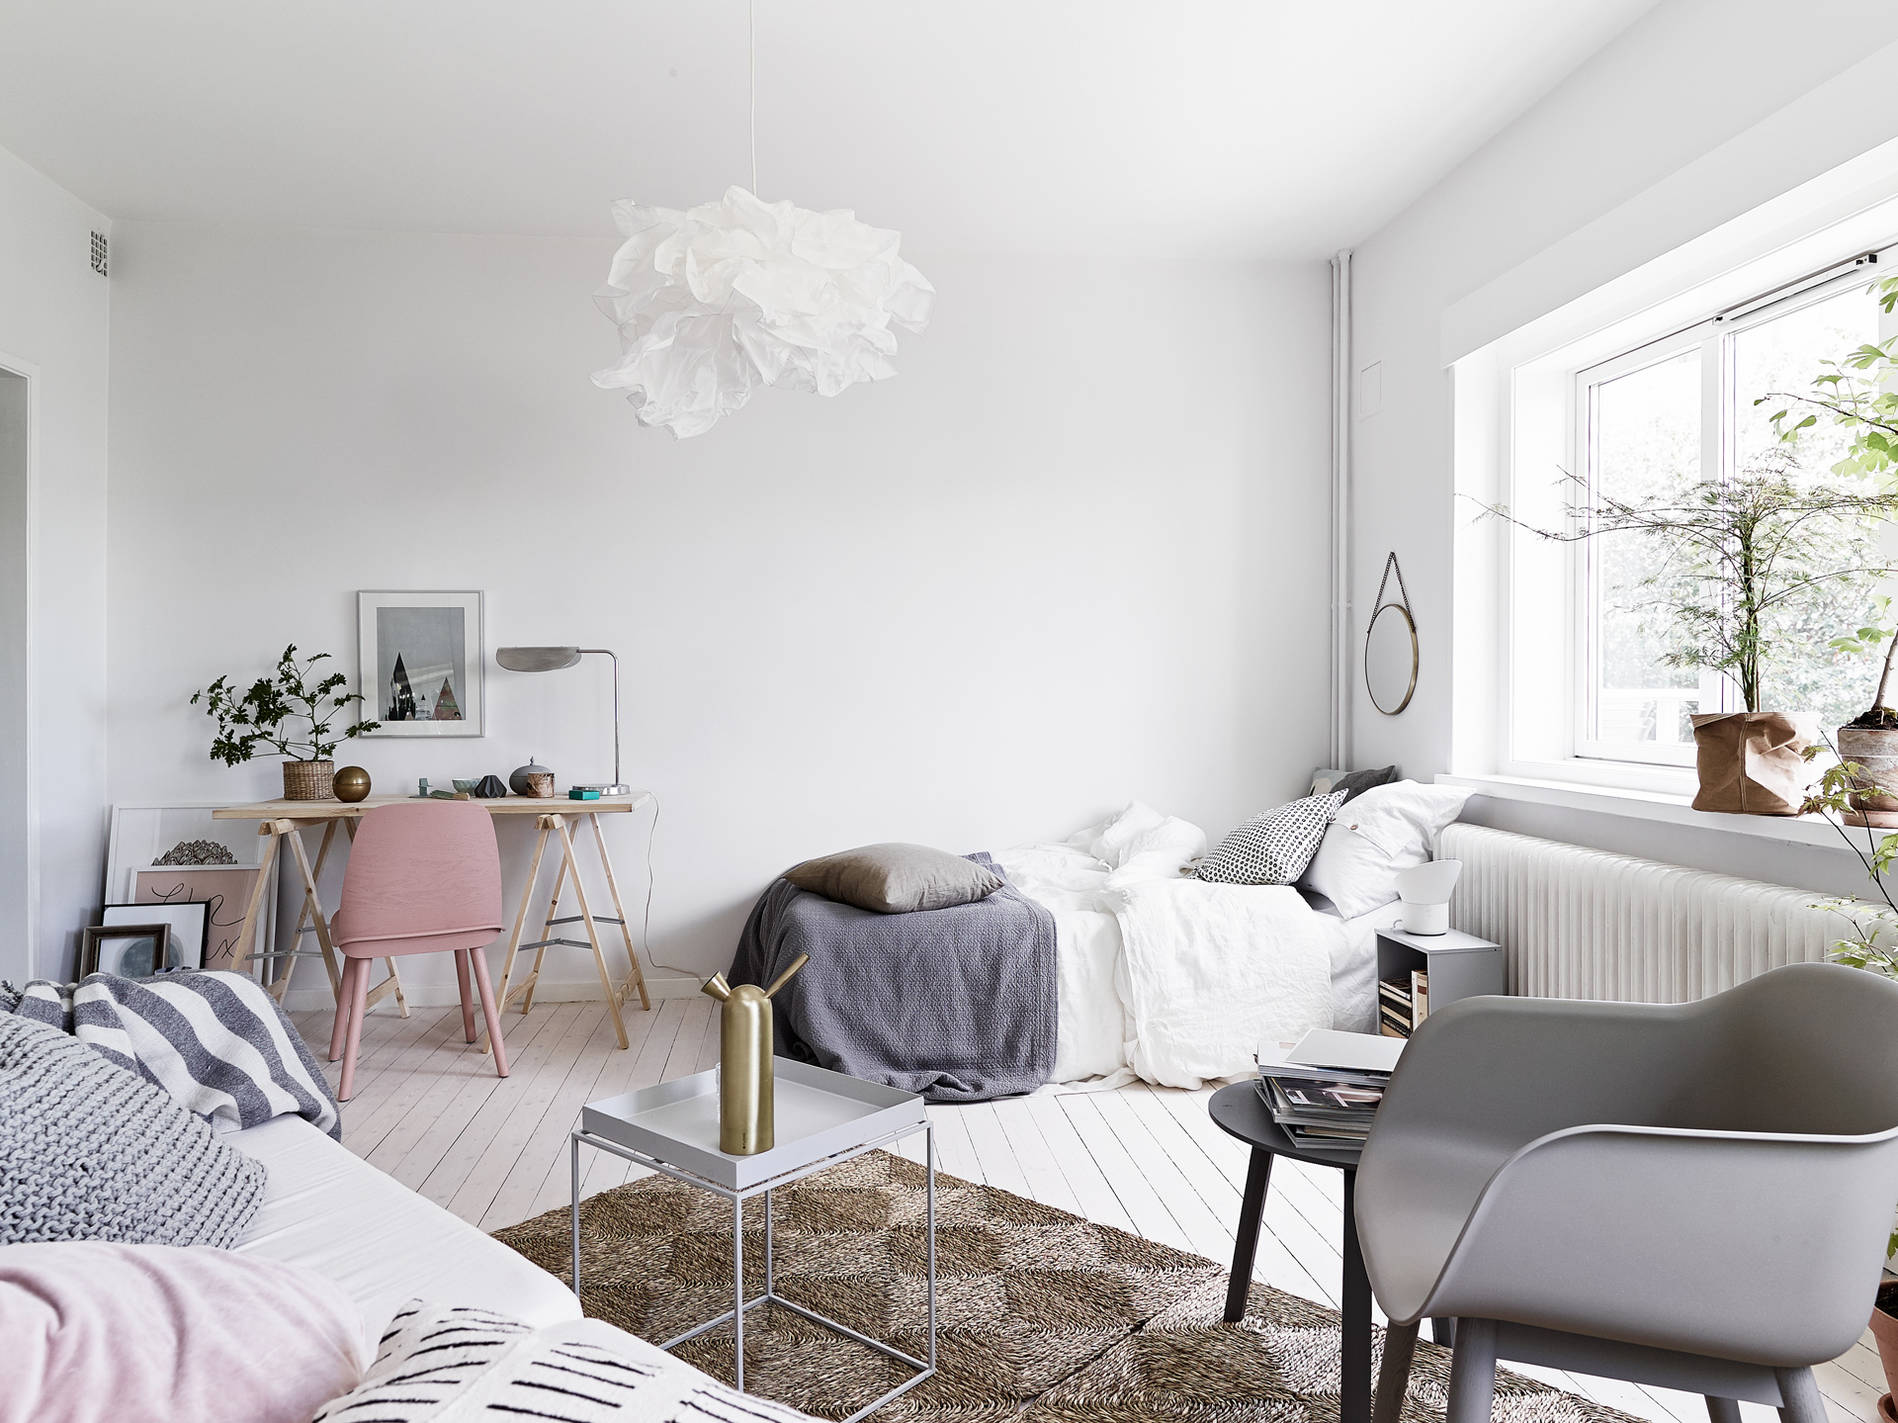 Woonkamer 35m2 Cozy And Light Coco Lapine Designcoco Lapine Design